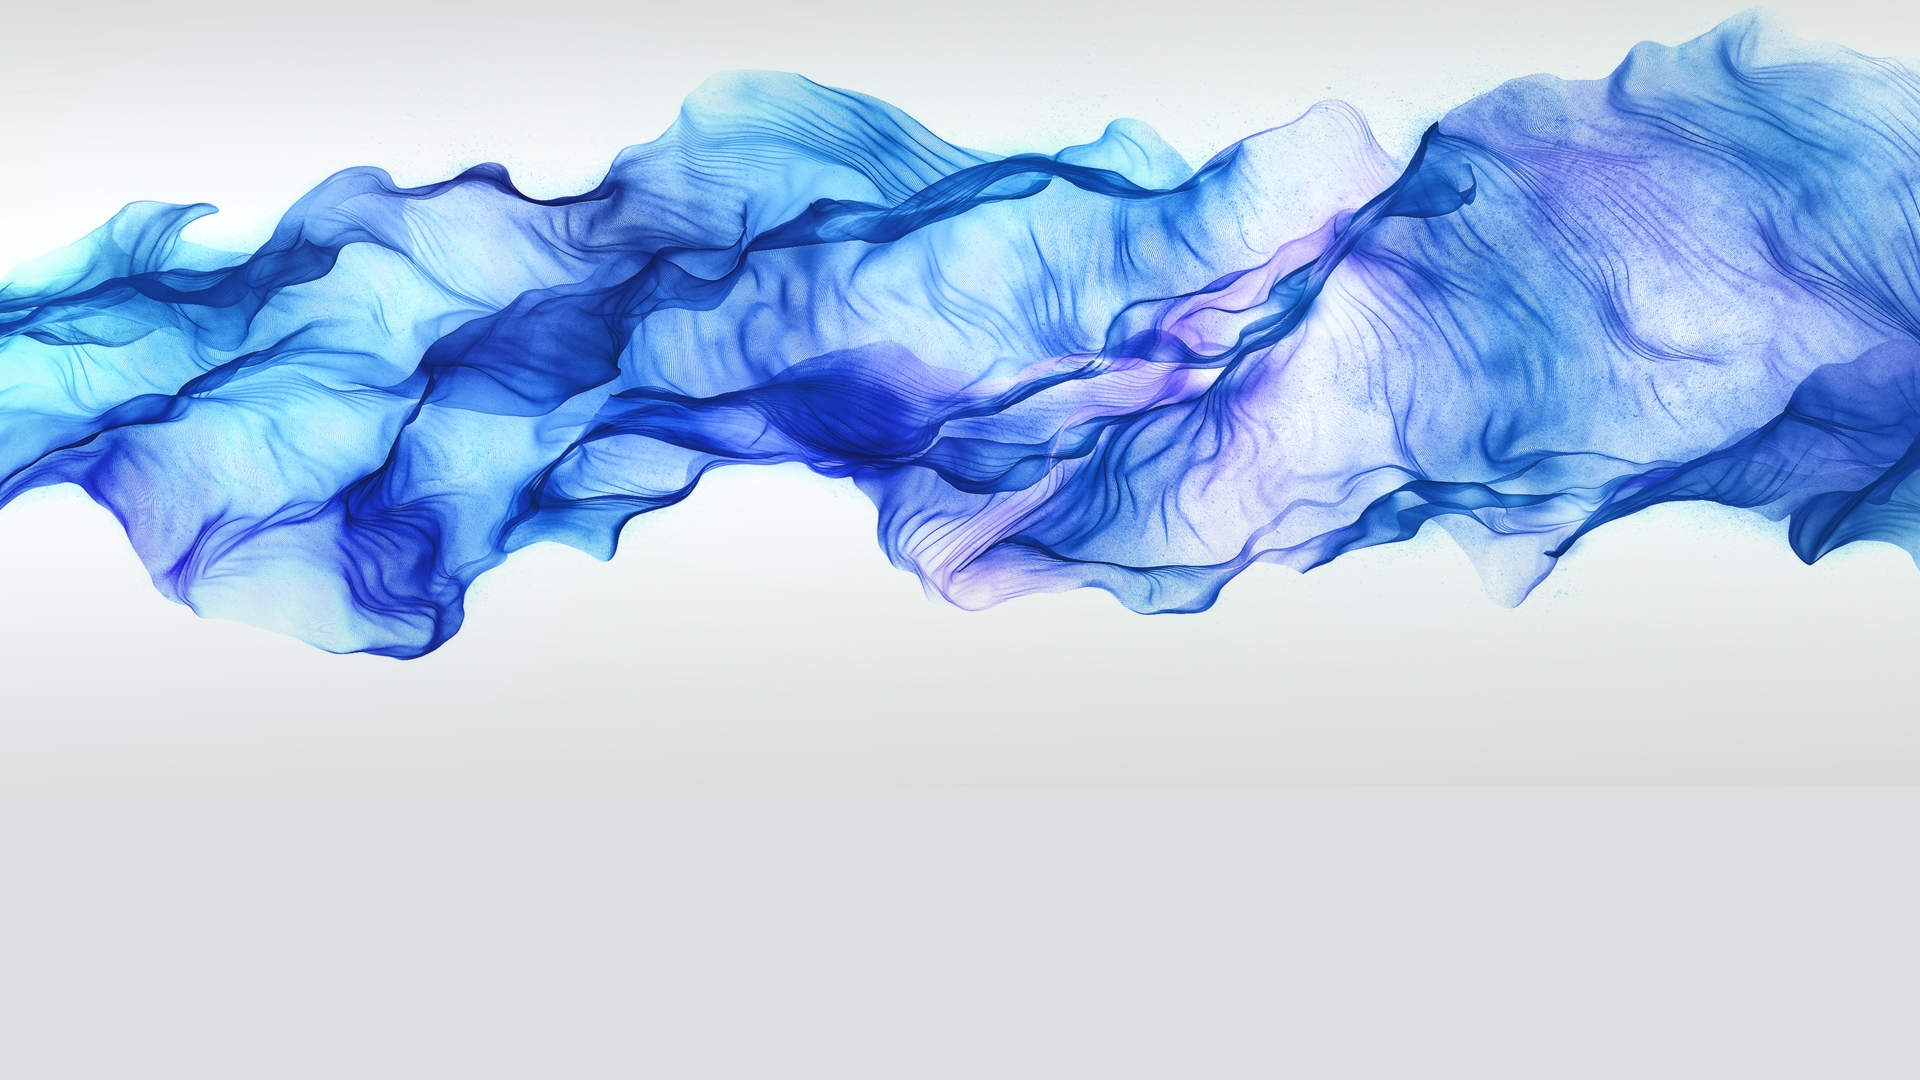 hd blue abstract wallpapers 1080p 1920x1080